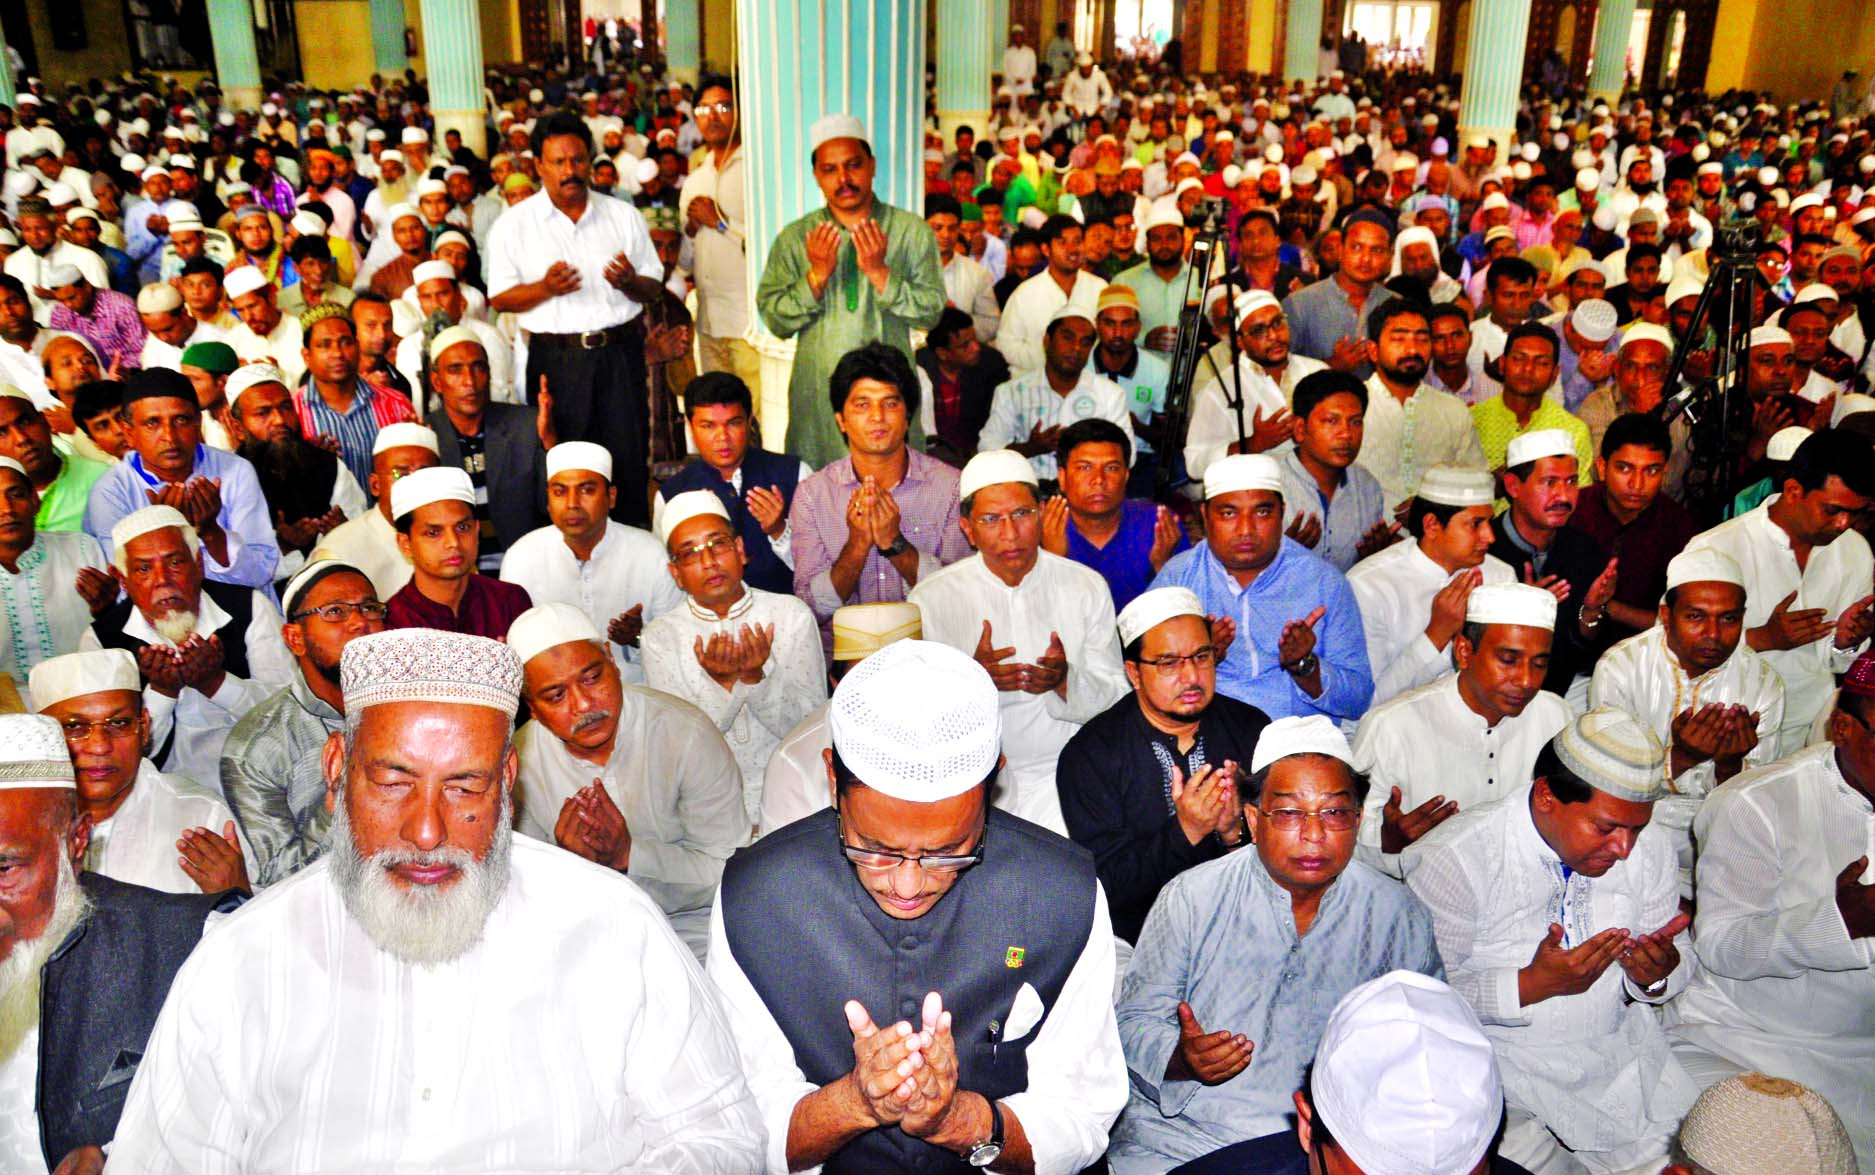 AL holds prayers for long life of Hasina